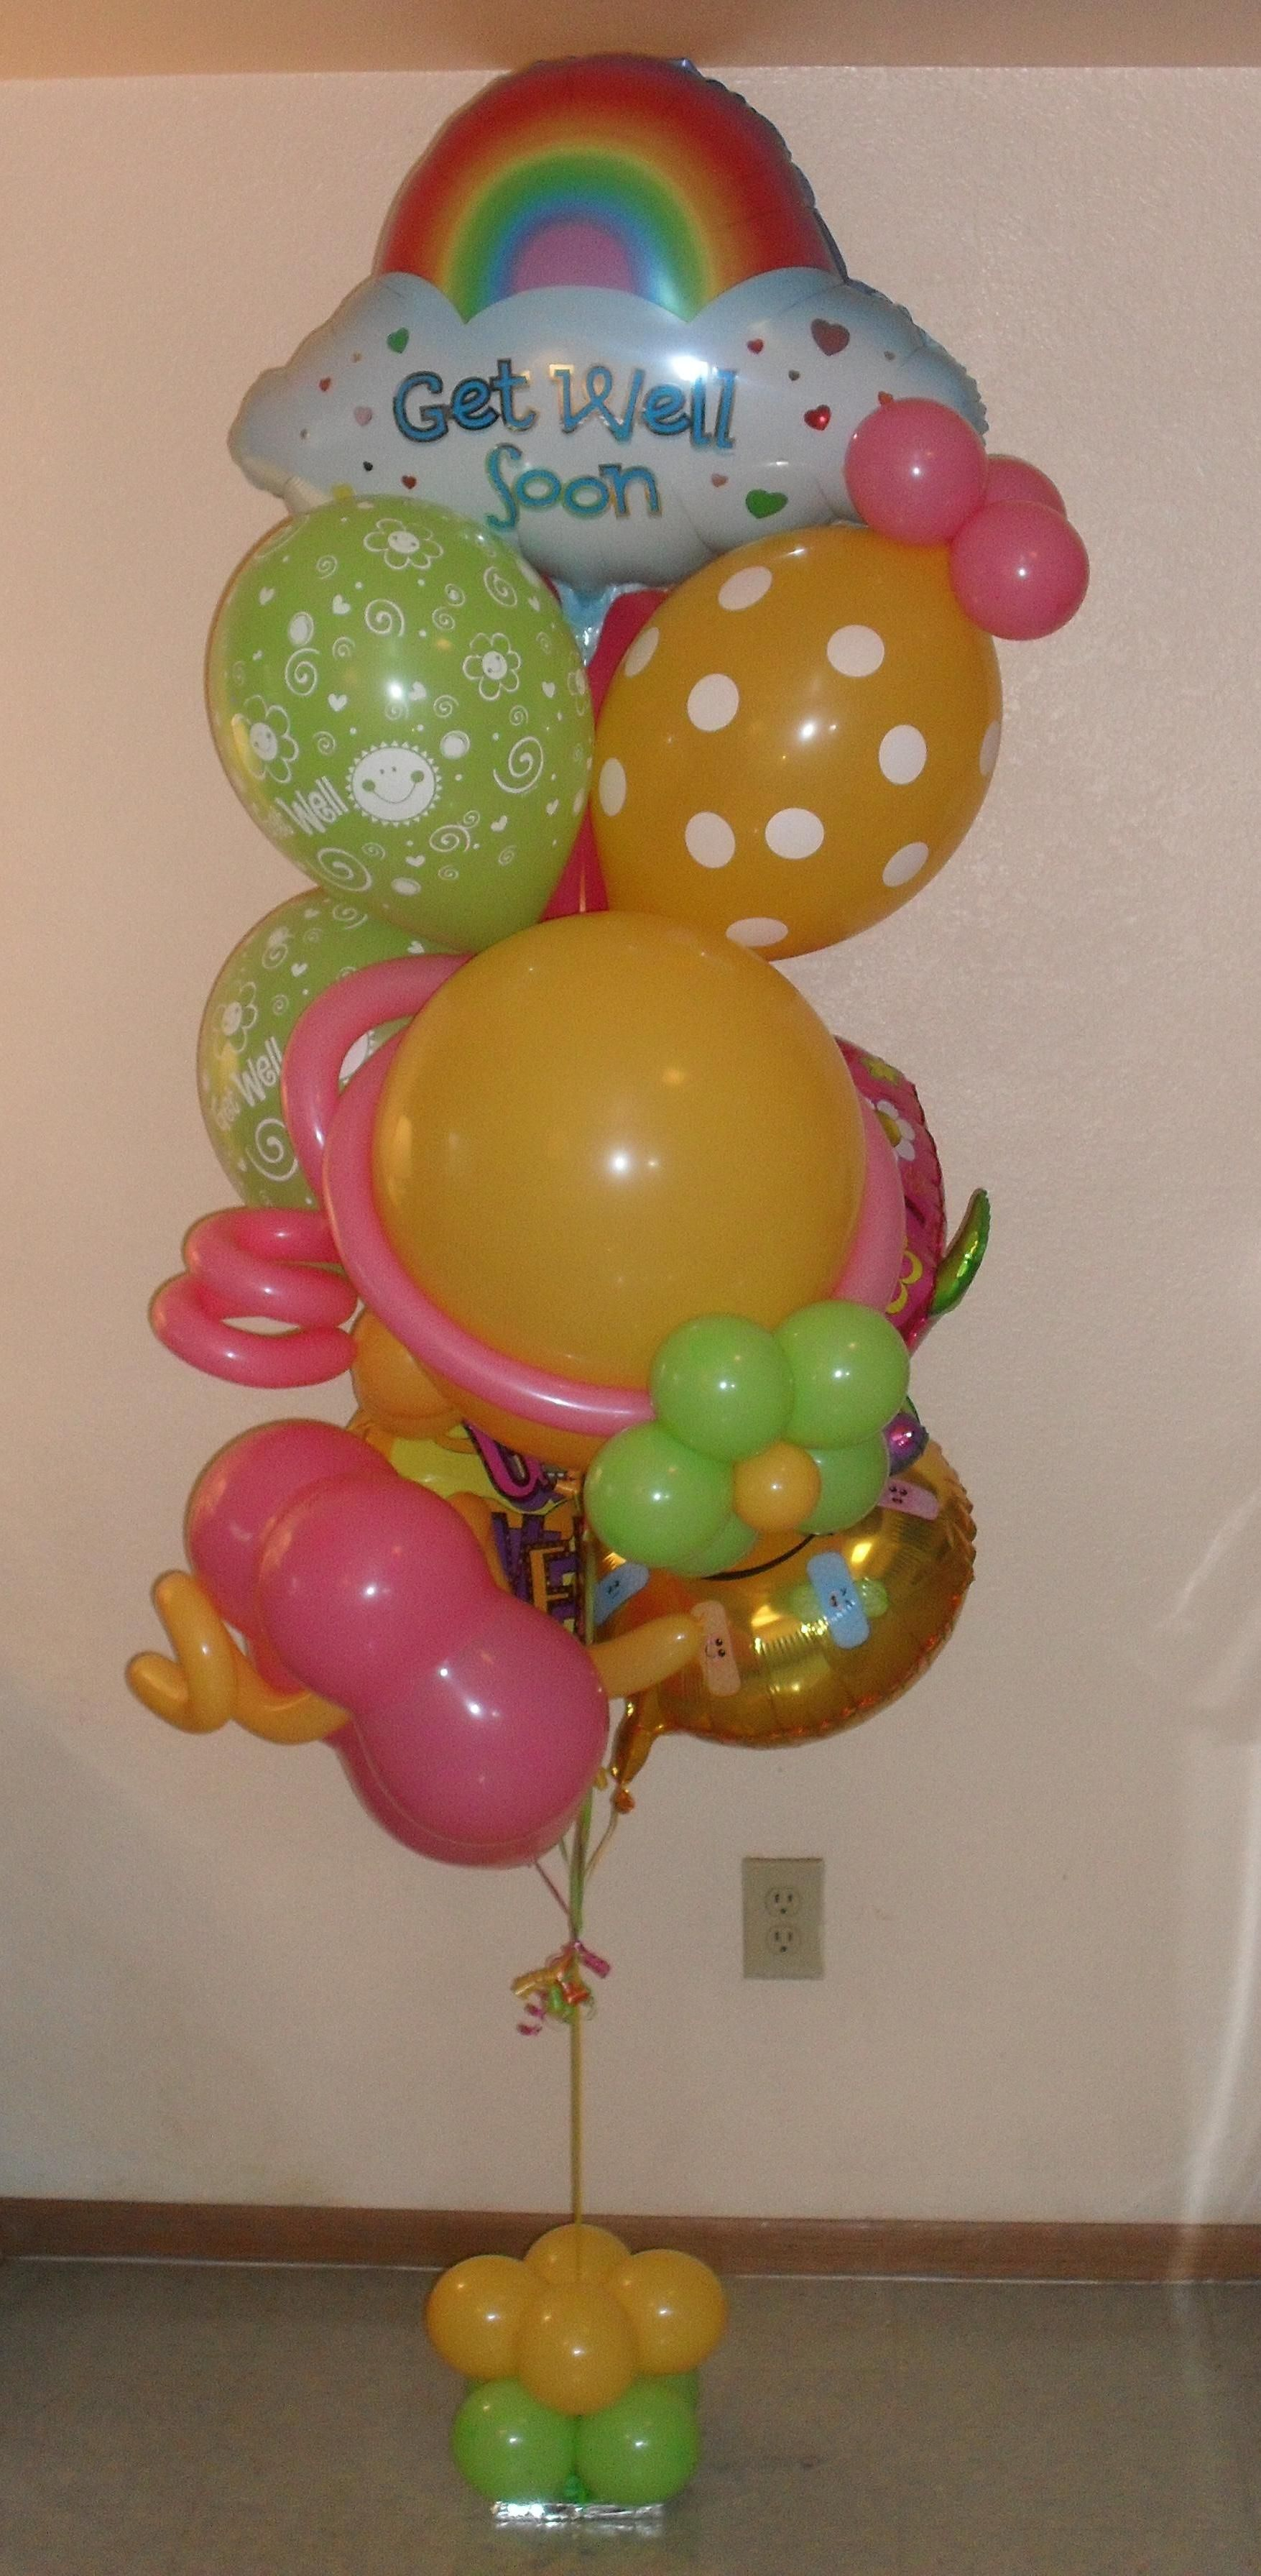 Relax You Re Over The Rainbow Get Well Soon Small Balloon Bouquet 80 Balloon Gift Balloons And More Small Balloons